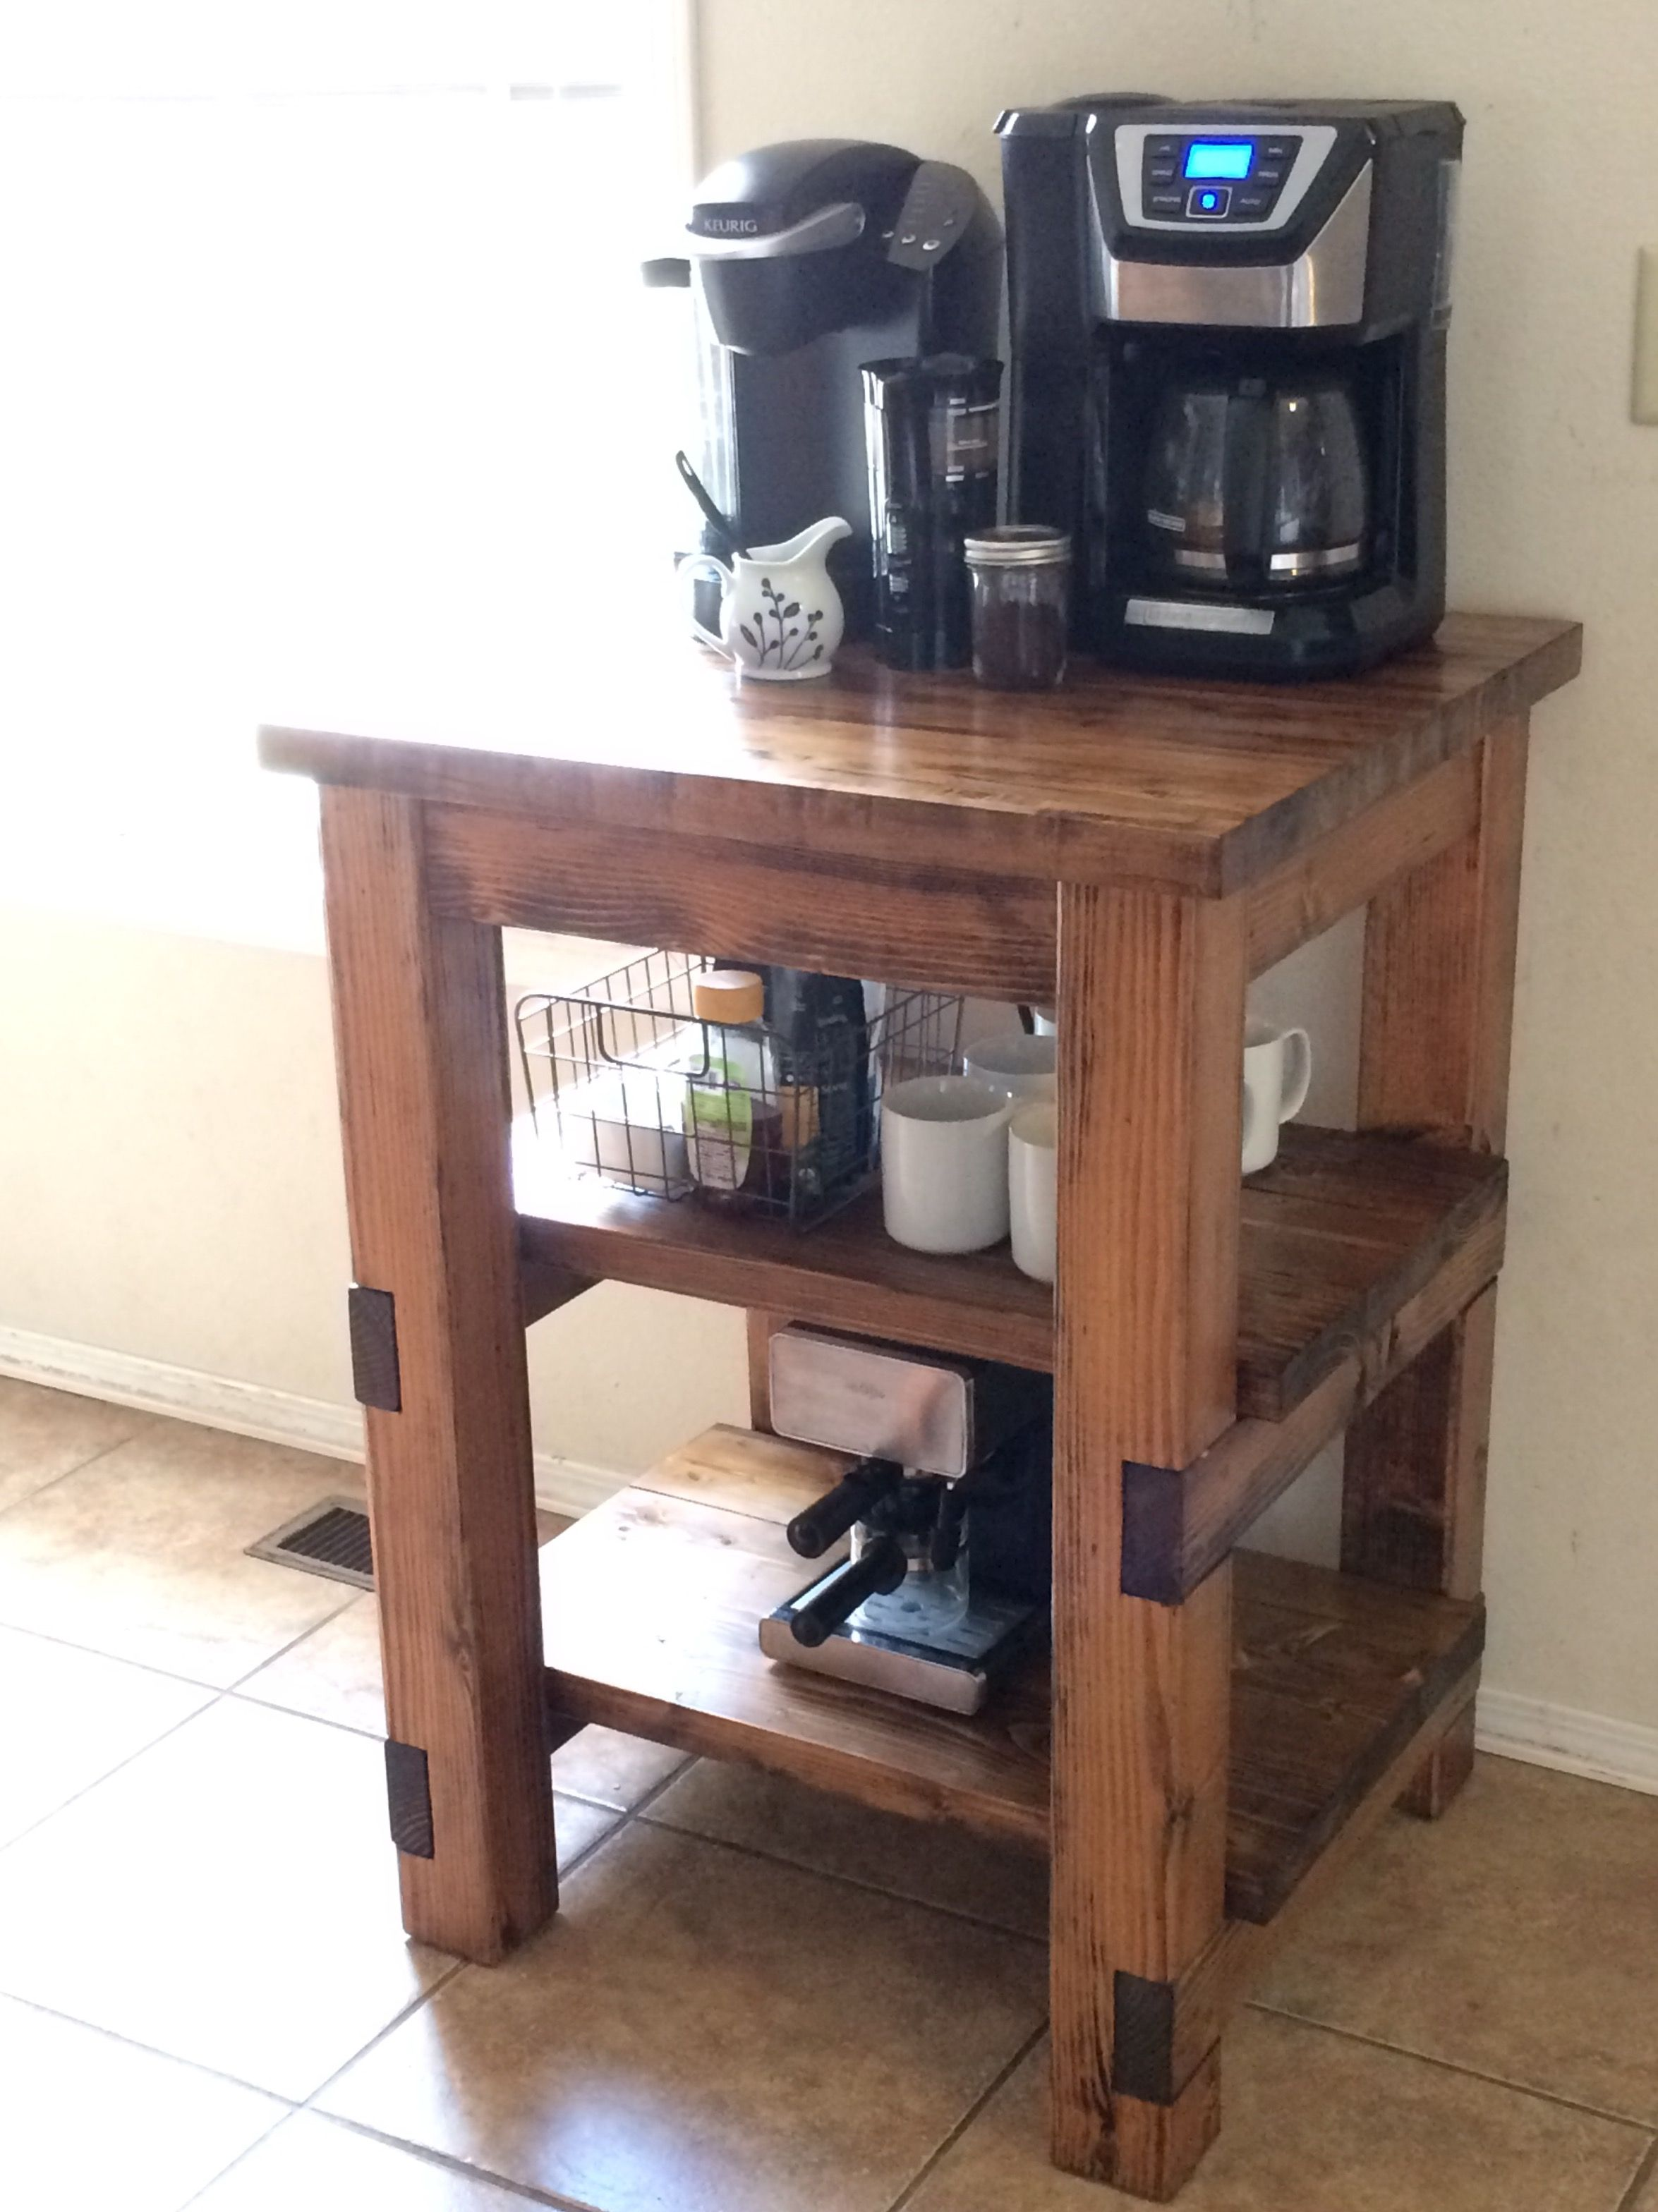 ana white coffee bar diy projects dining room tutorials